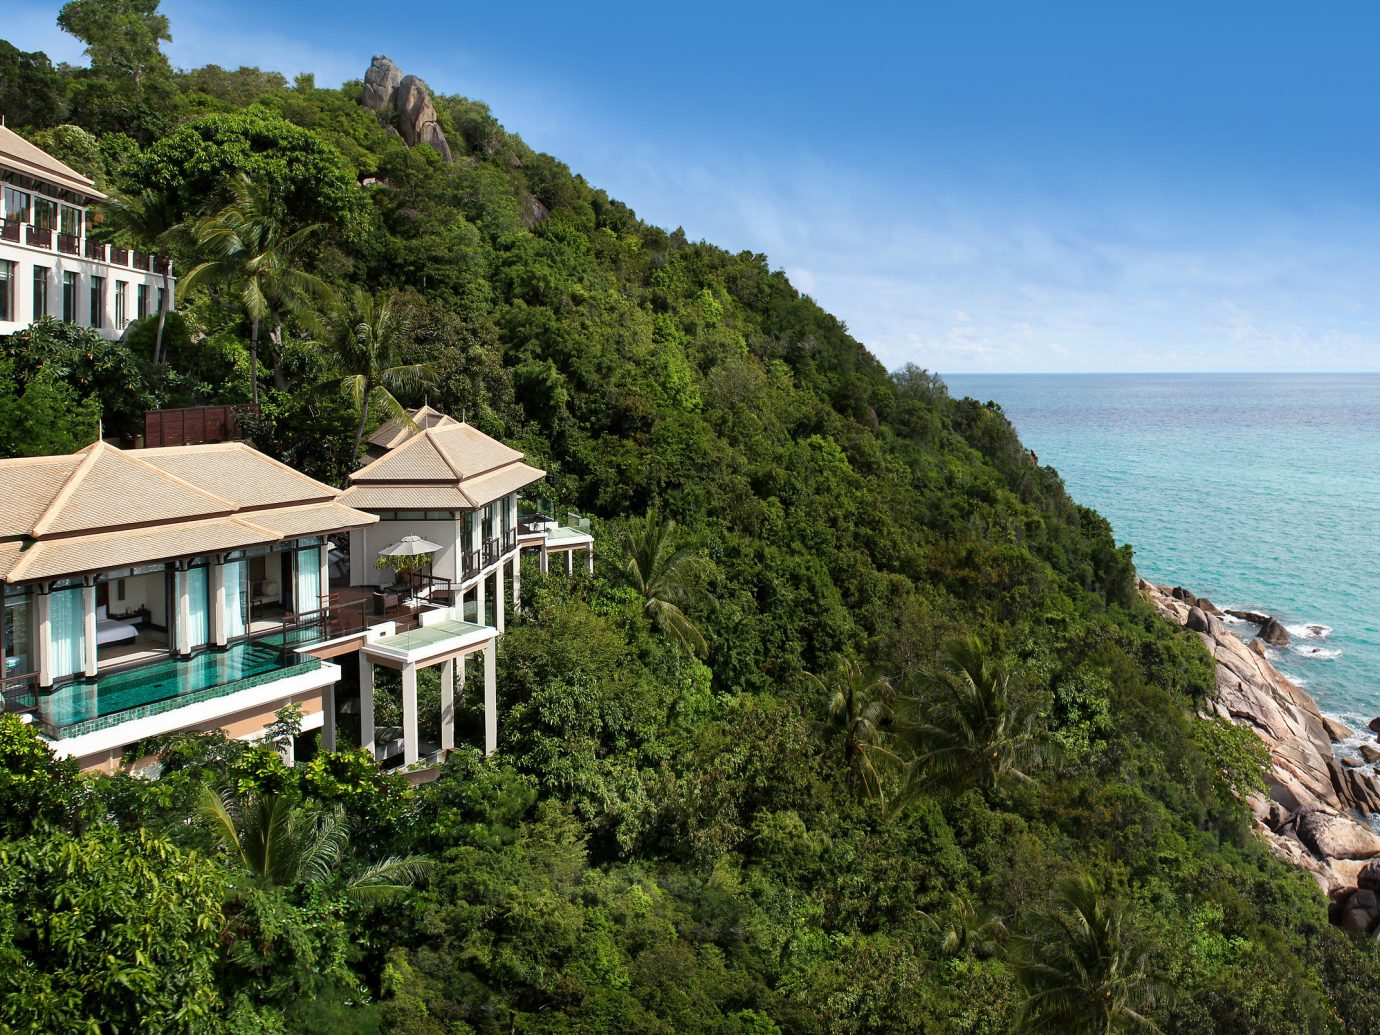 Hotels outdoor sky tree water mountain geographical feature Coast landform vacation Nature Sea Ocean cliff bay Beach terrain cape traveling hillside Island